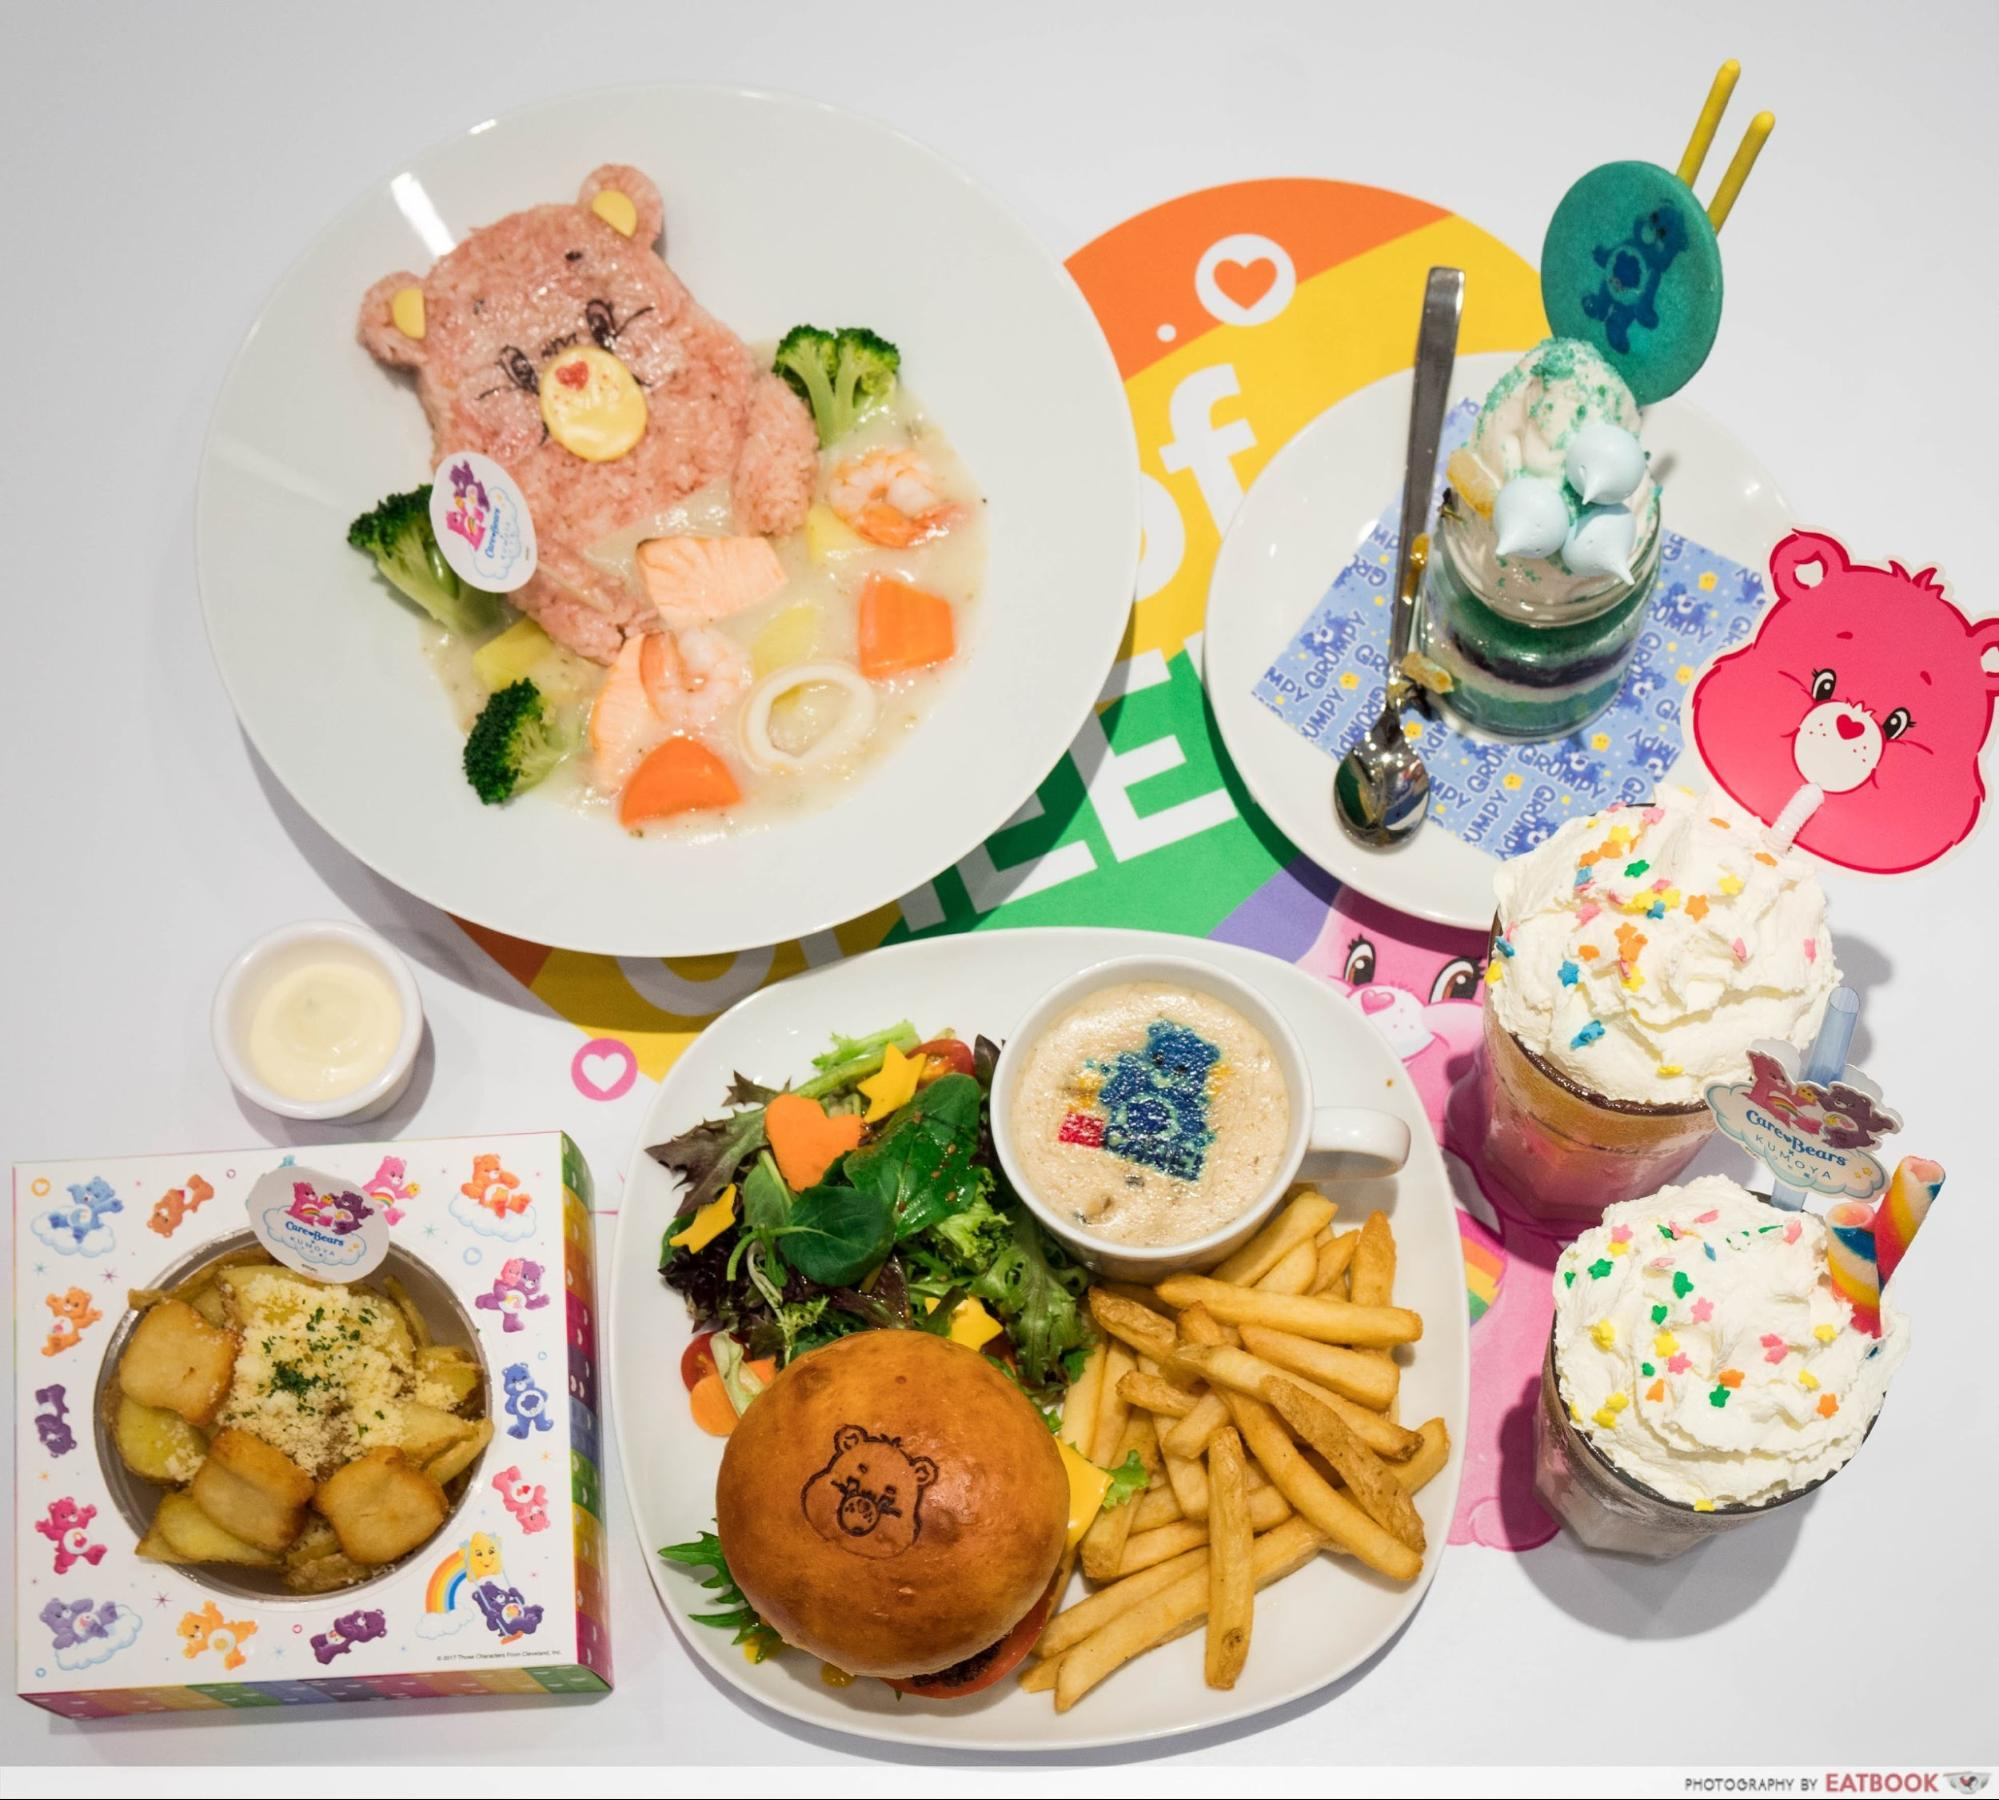 Feb 2018 cafes and restaurants (5) - Care Bears Cafe food